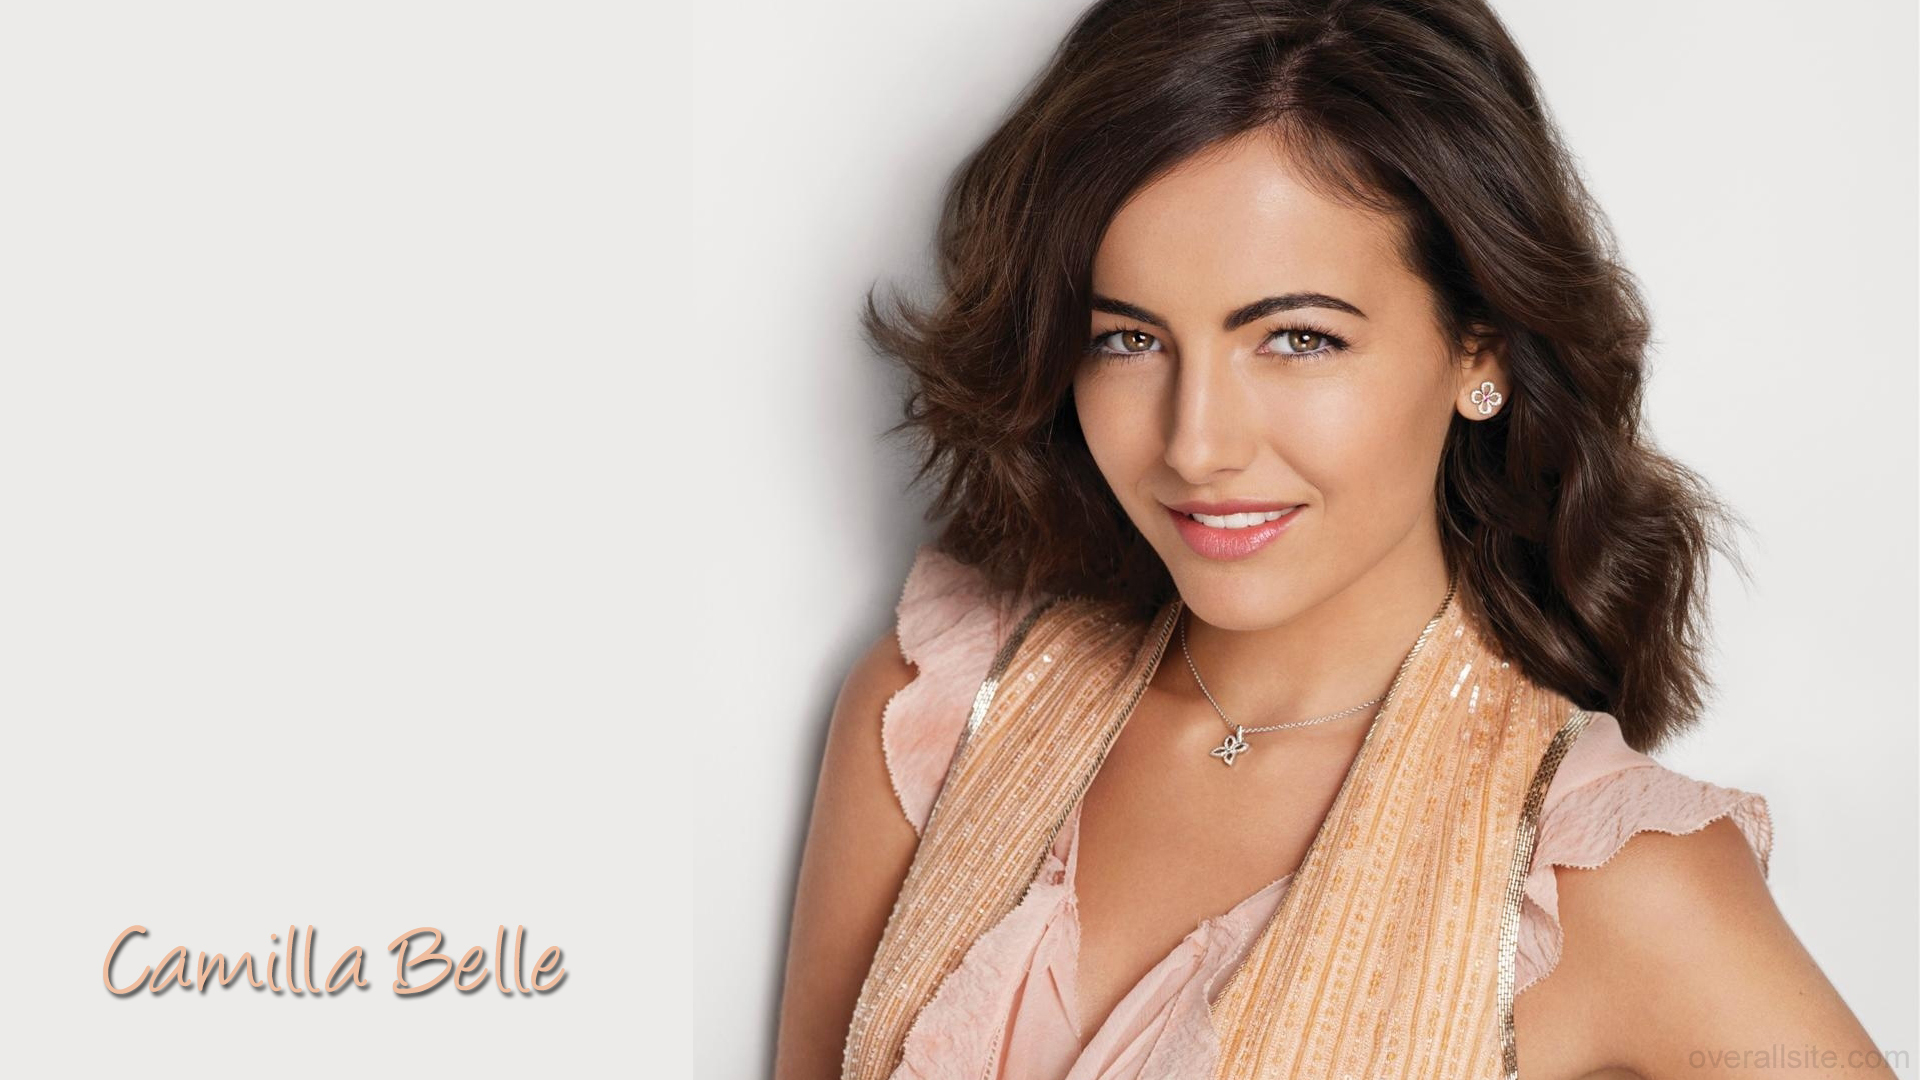 1920x1080 - Camilla Belle Wallpapers 16